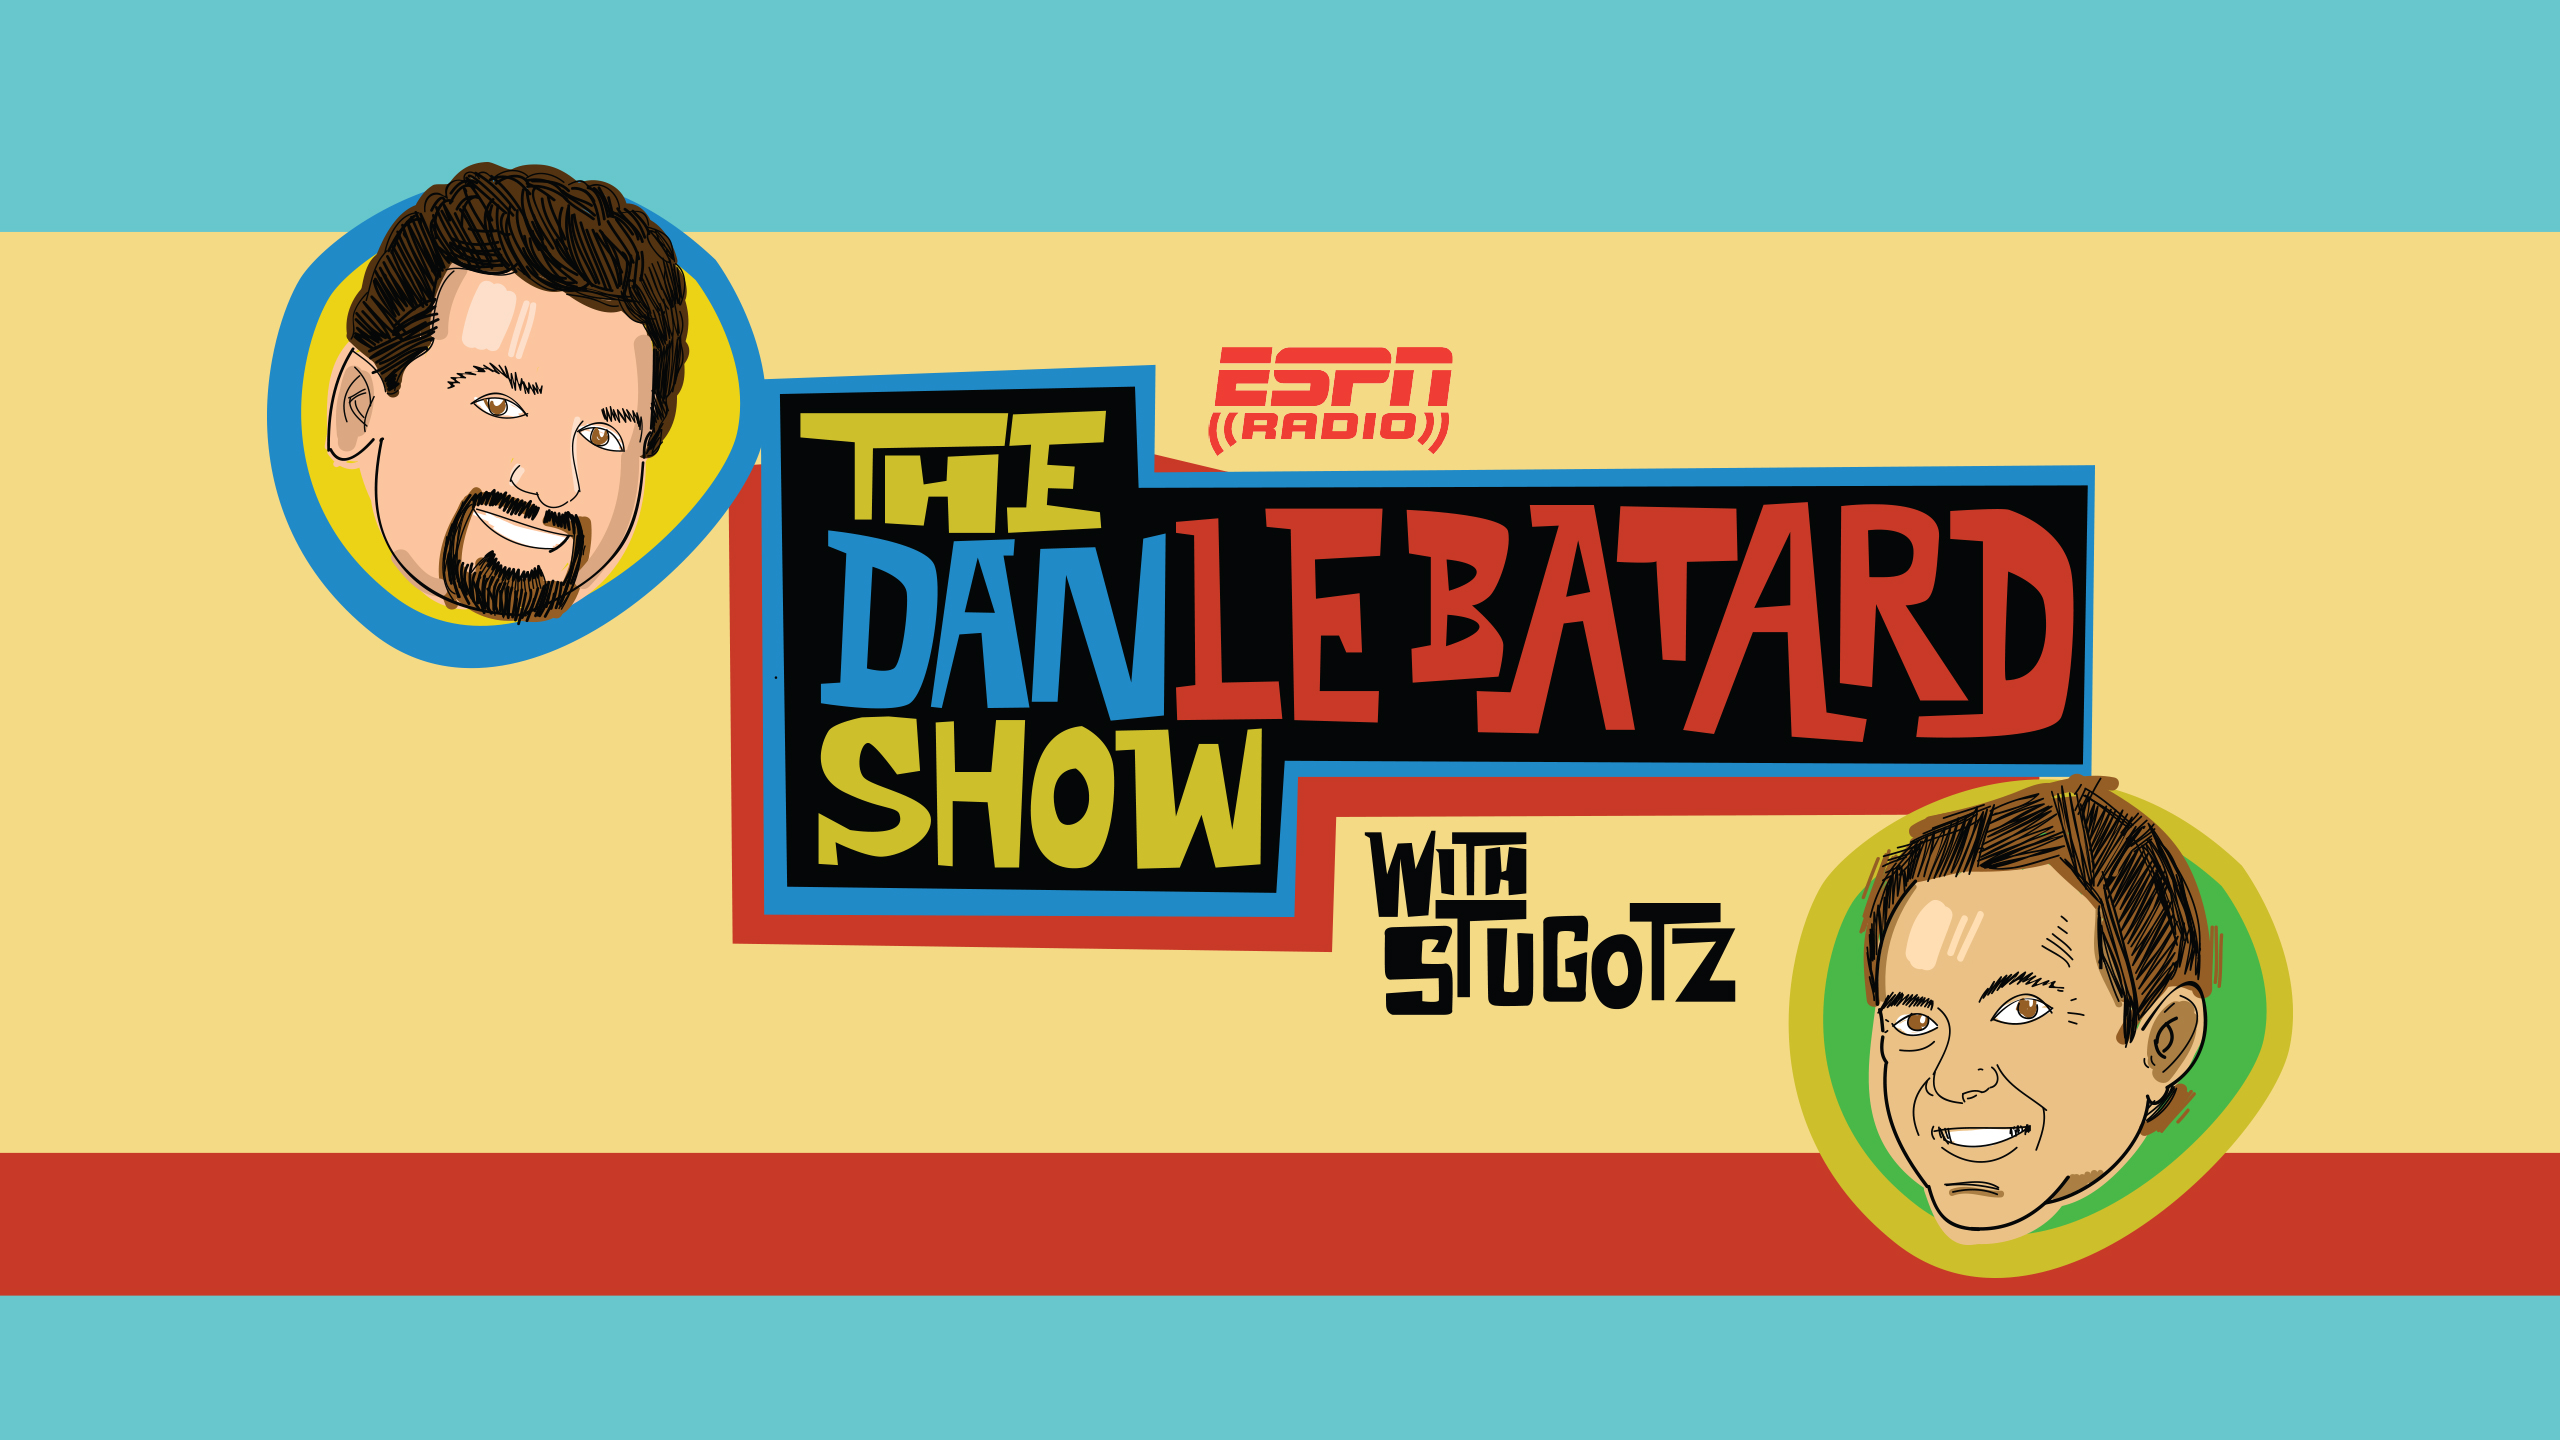 Thu, 10/18 - The Dan Le Batard Show with Stugotz Presented by Progressive